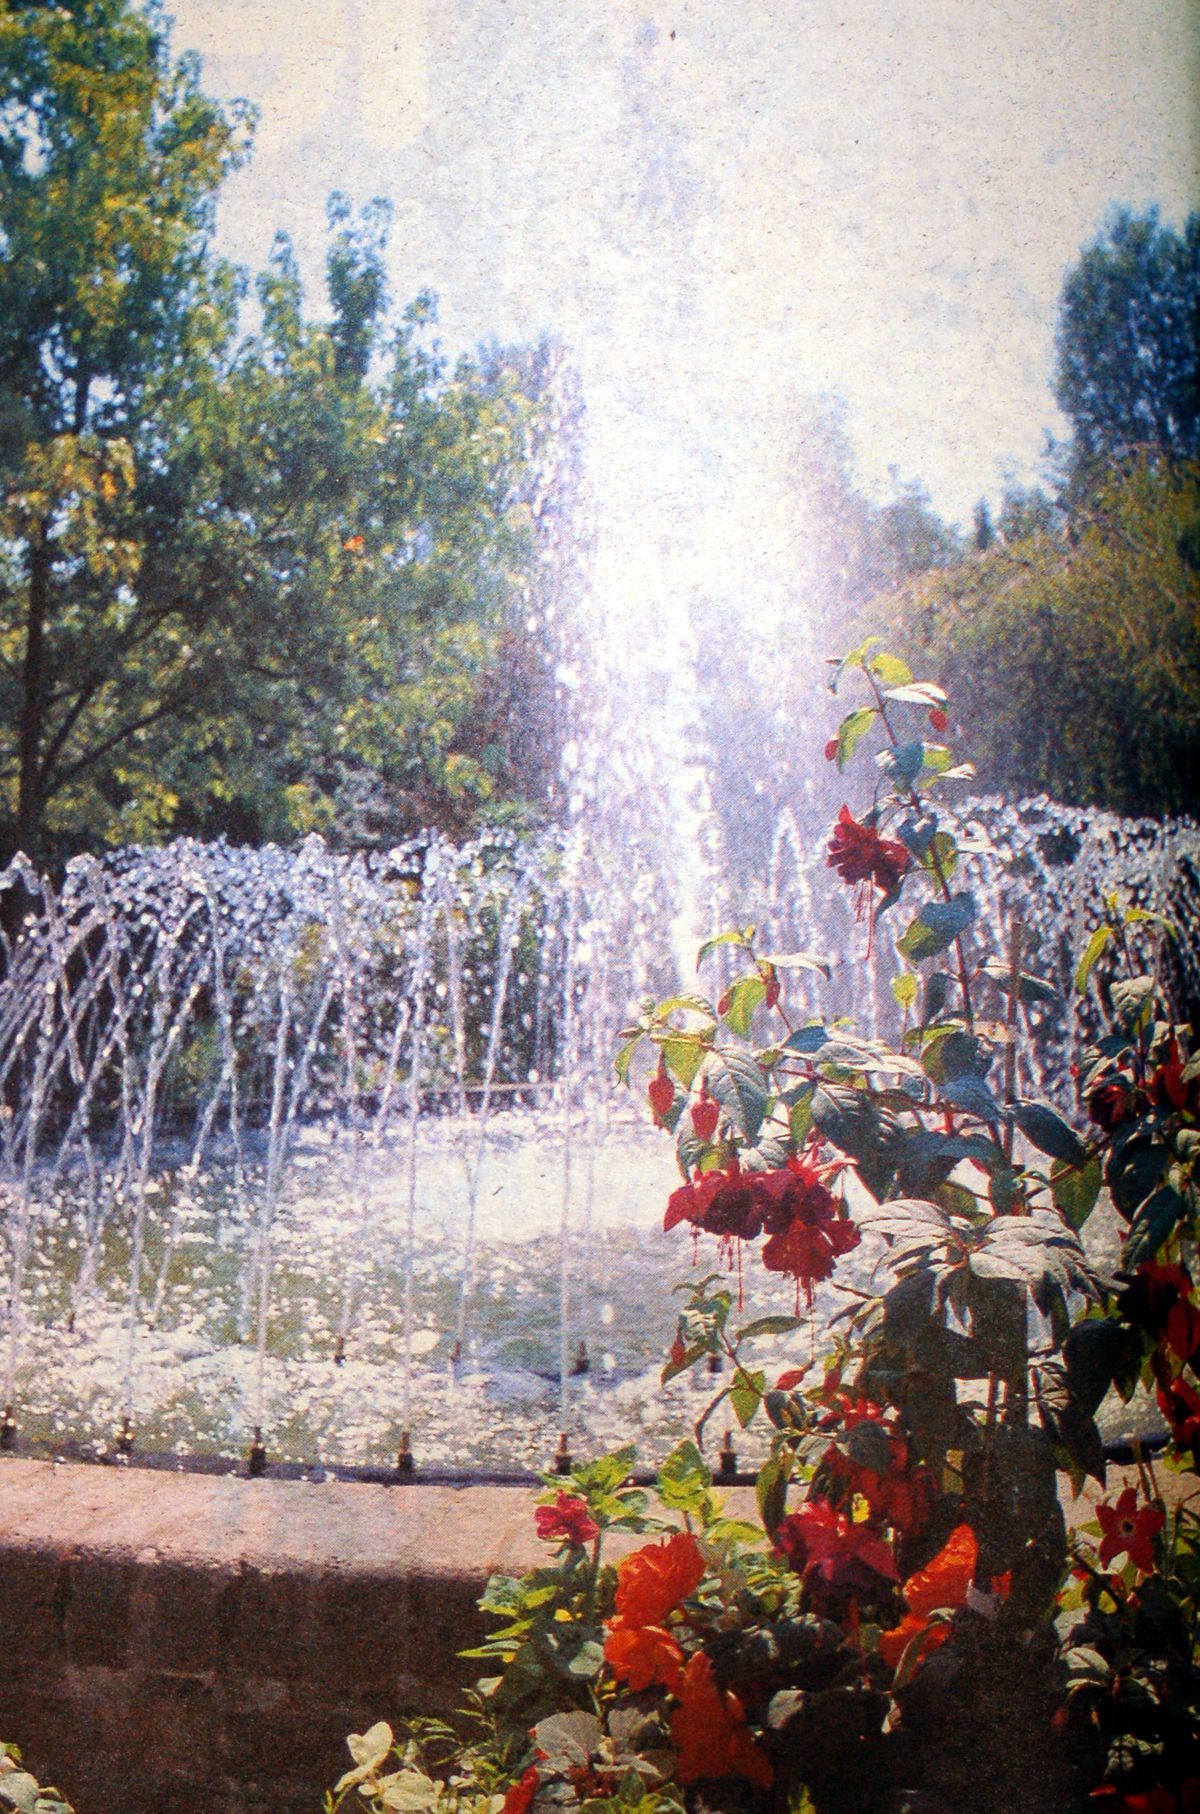 The magnificent Chelsea Gardens in Telford town park were one of the features which helped the town to a Britain in Bloom win.